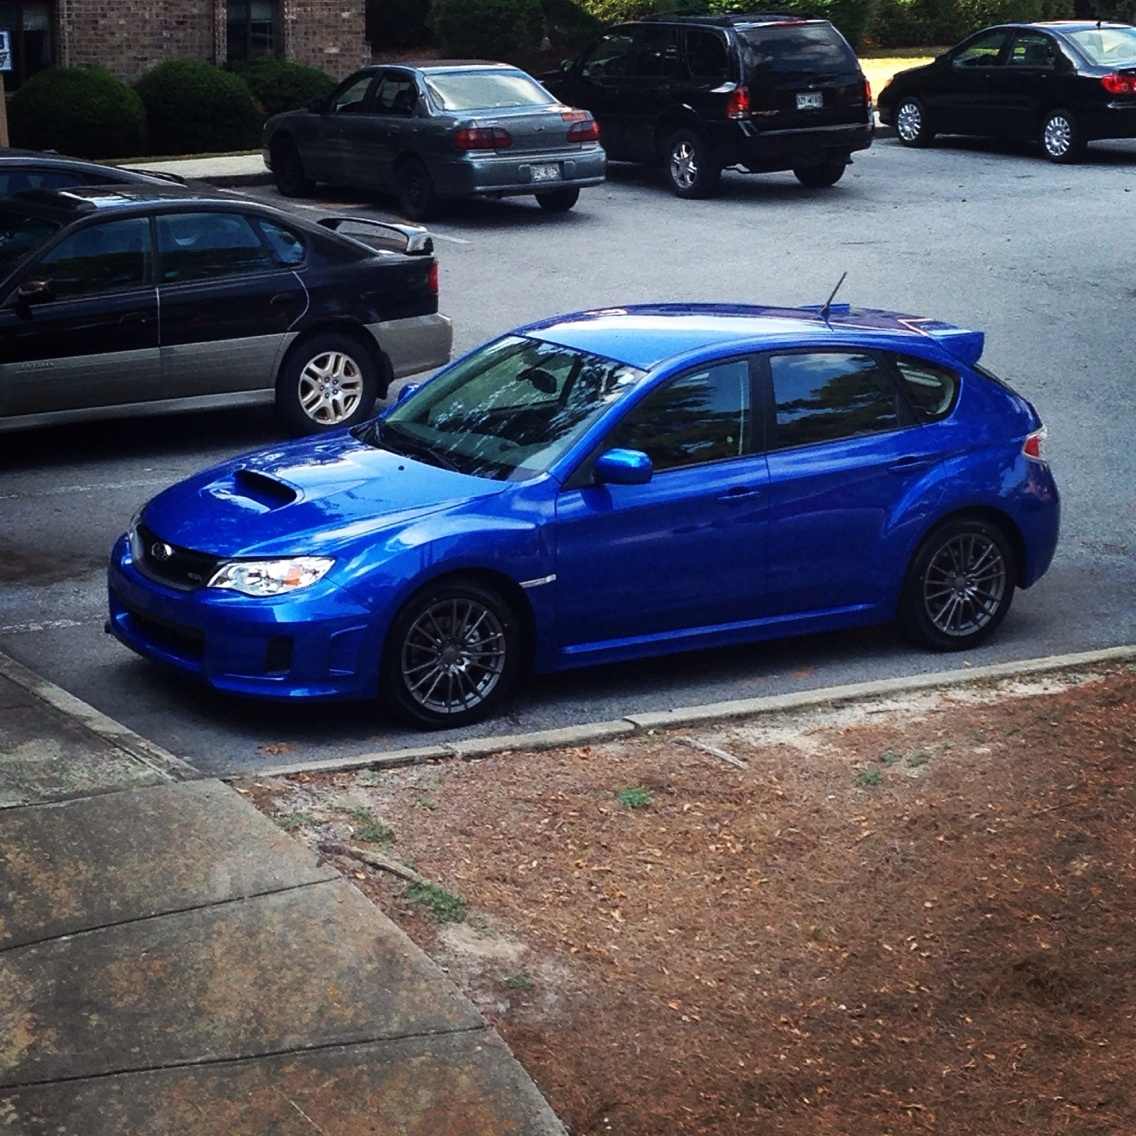 picture of 2014 subaru impreza wrx hatchback exterior. Black Bedroom Furniture Sets. Home Design Ideas